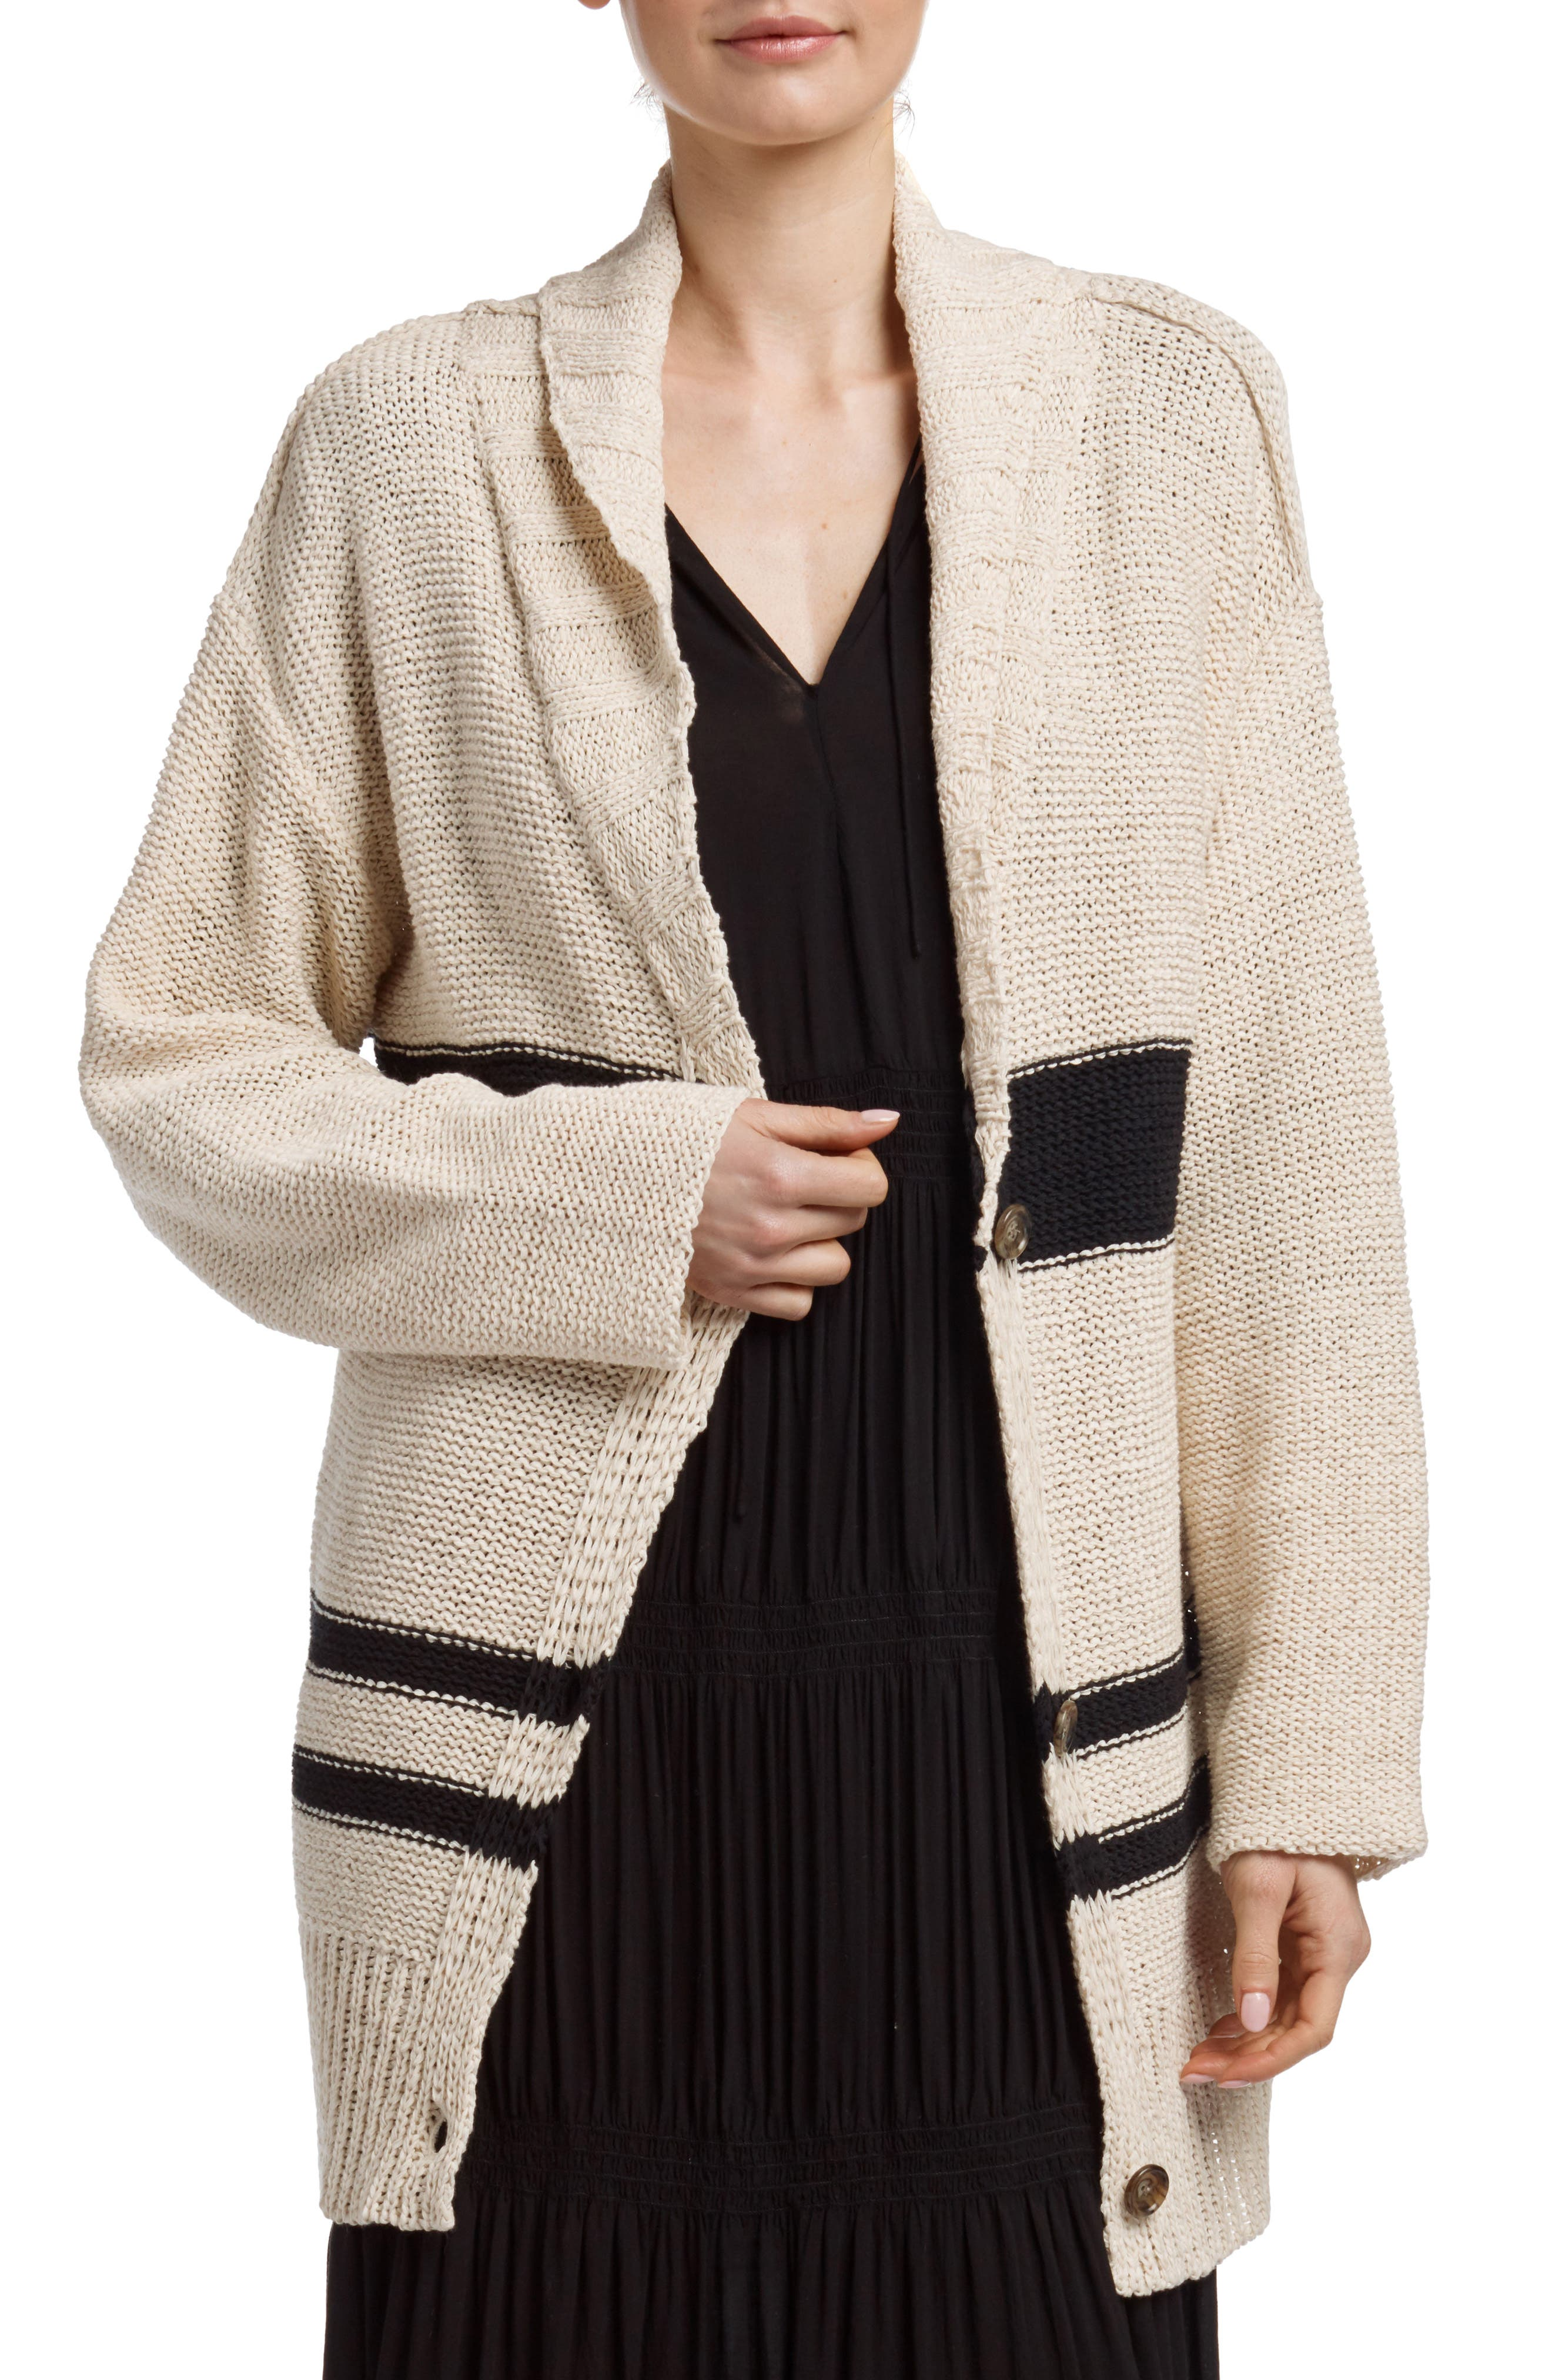 2018 New Cheap Online James Perse Woman Hooded Open-knit Cotton And Linen-blend Cardigan Gray Size 1 James Perse Cheap Sale Comfortable TeyzEf